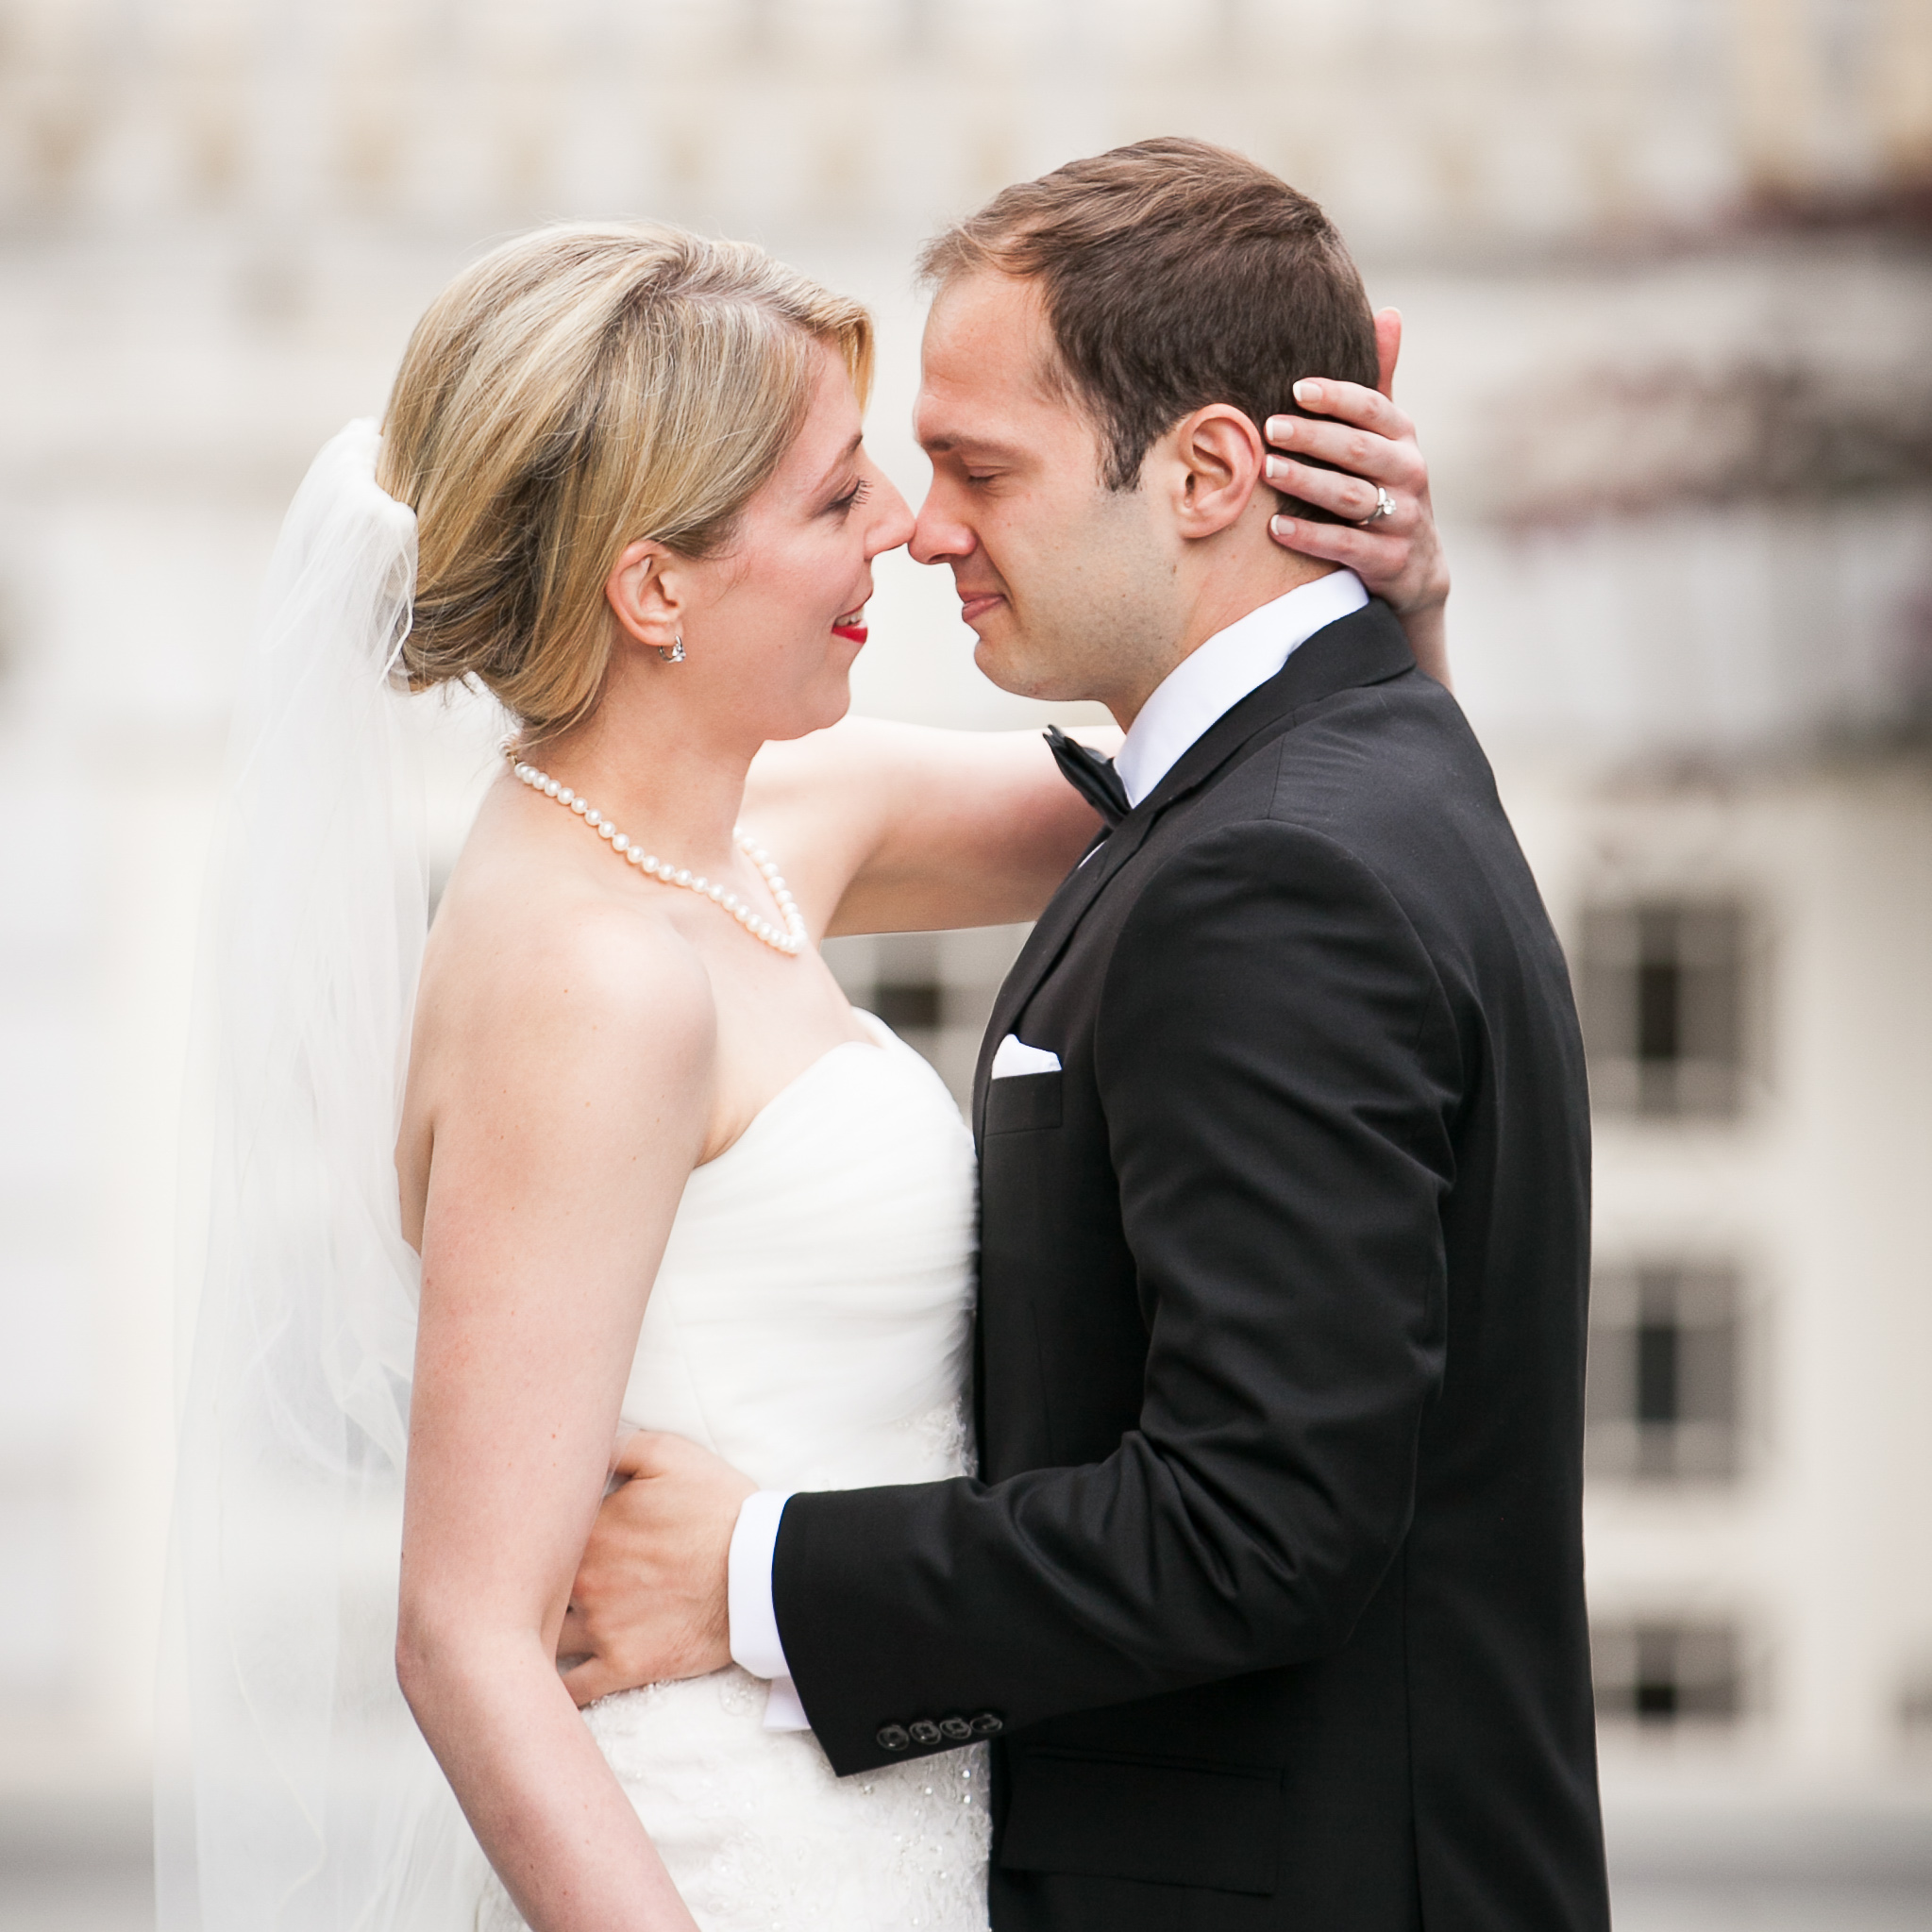 The Benefits of Having a First Look Wedding Photography